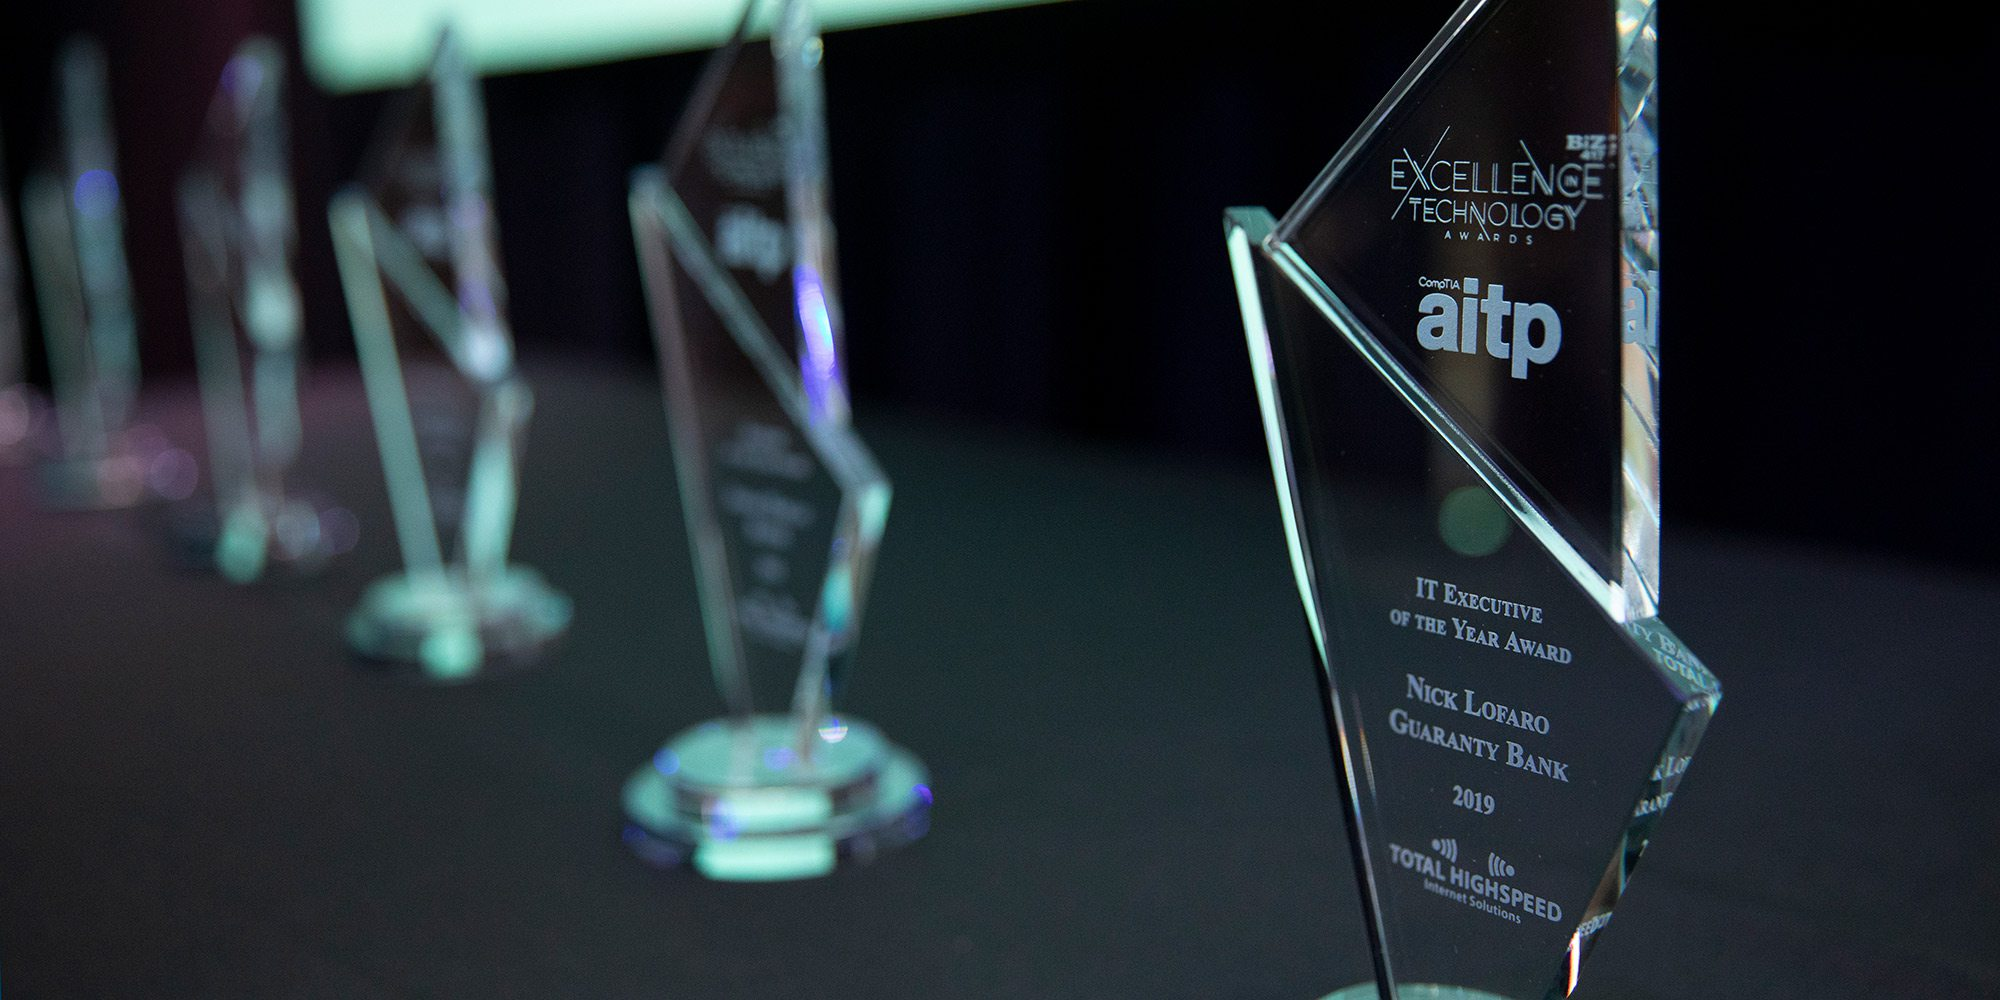 Biz 417's Excellence in Technology Award 2019